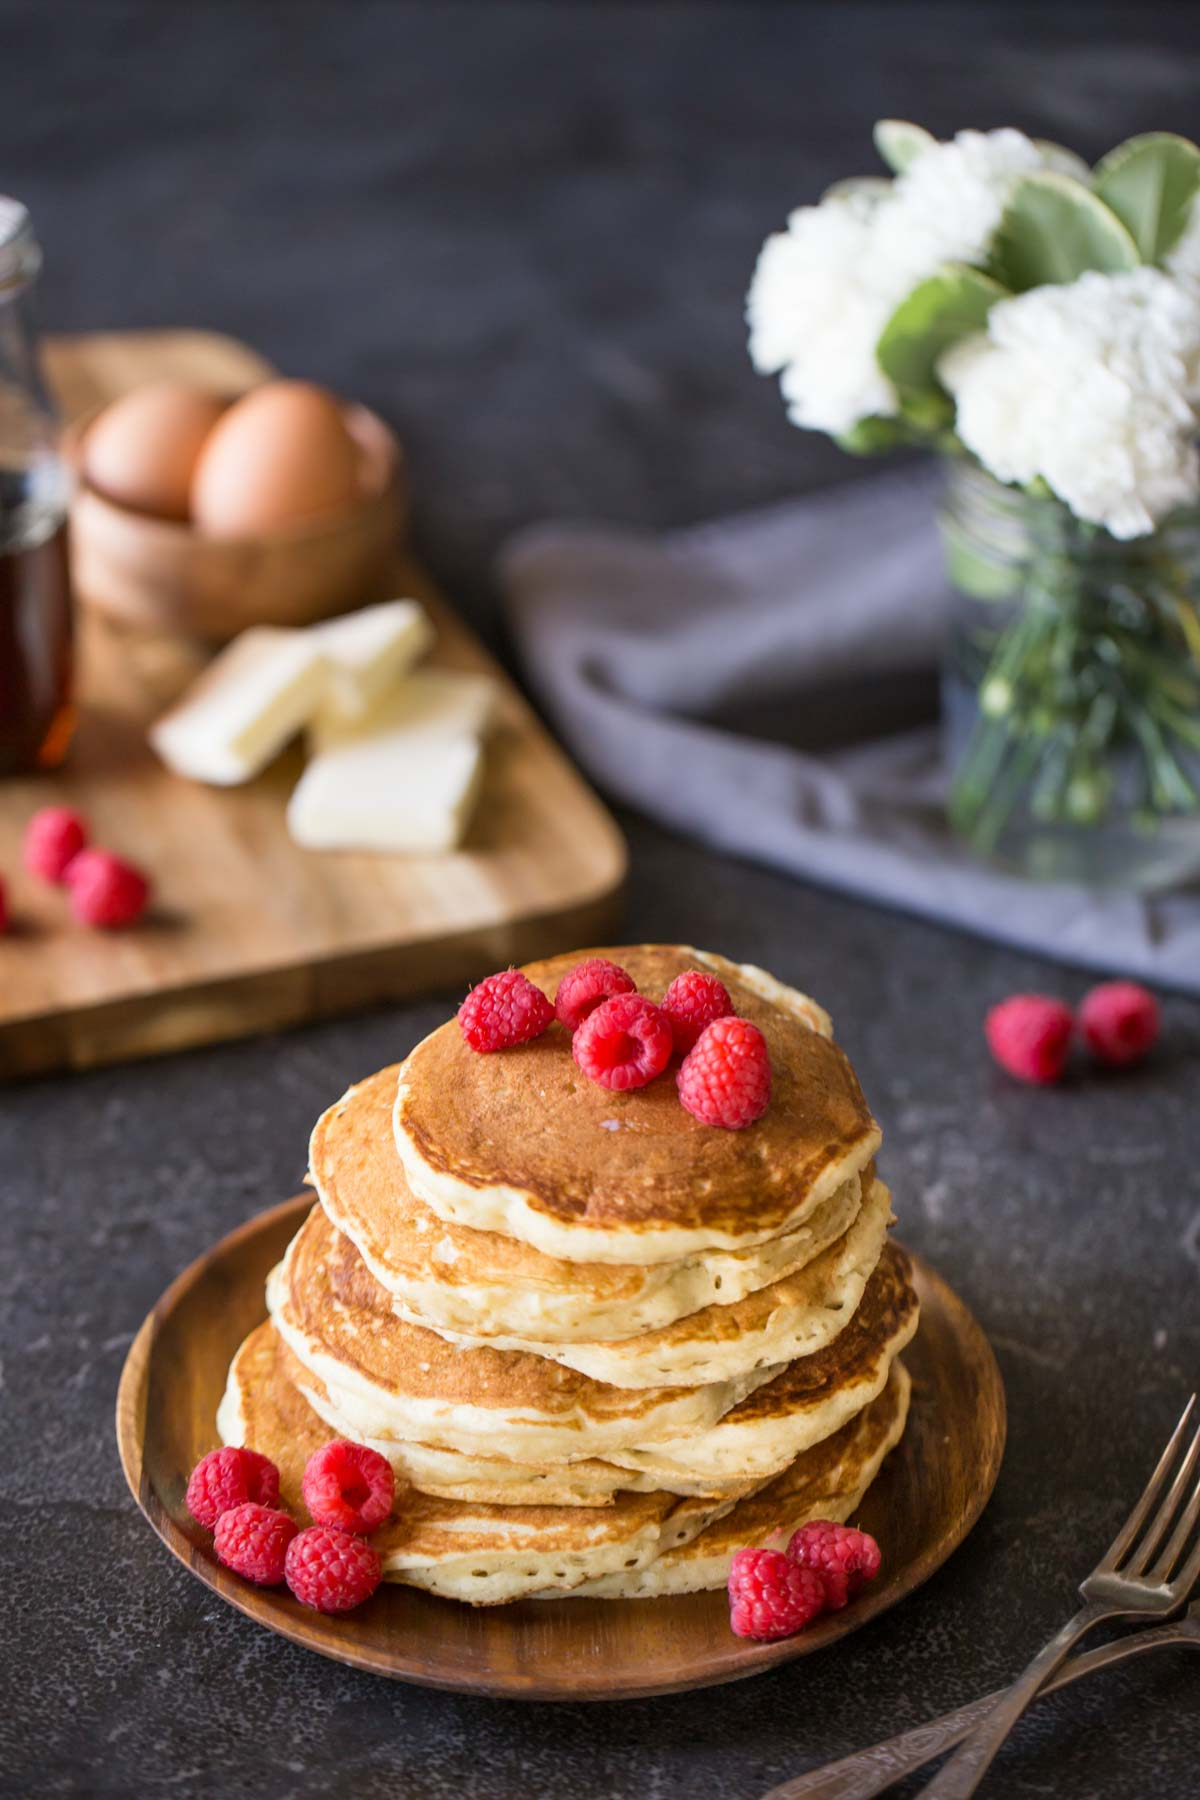 A stack of the Best Ever Buttermilk Pancakes on a plate, topped with fresh raspberries, with a cutting board with four pads of butter, a small wood bowl of brown eggs, a glass jar of maple syrup and a few fresh raspberries in the background, along with a flower arrangement.